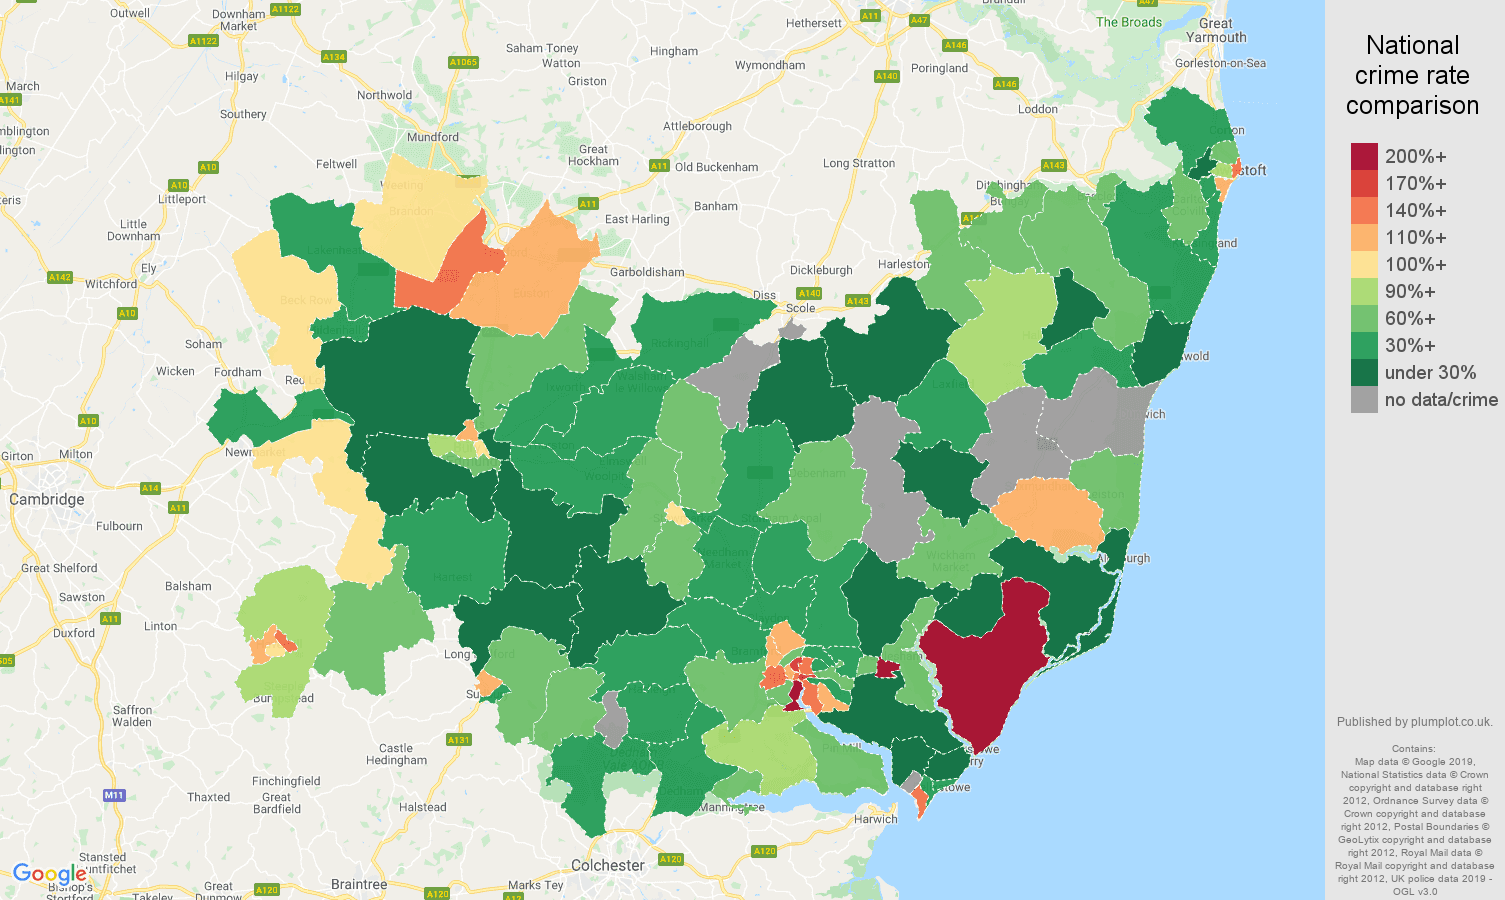 Suffolk other crime rate comparison map